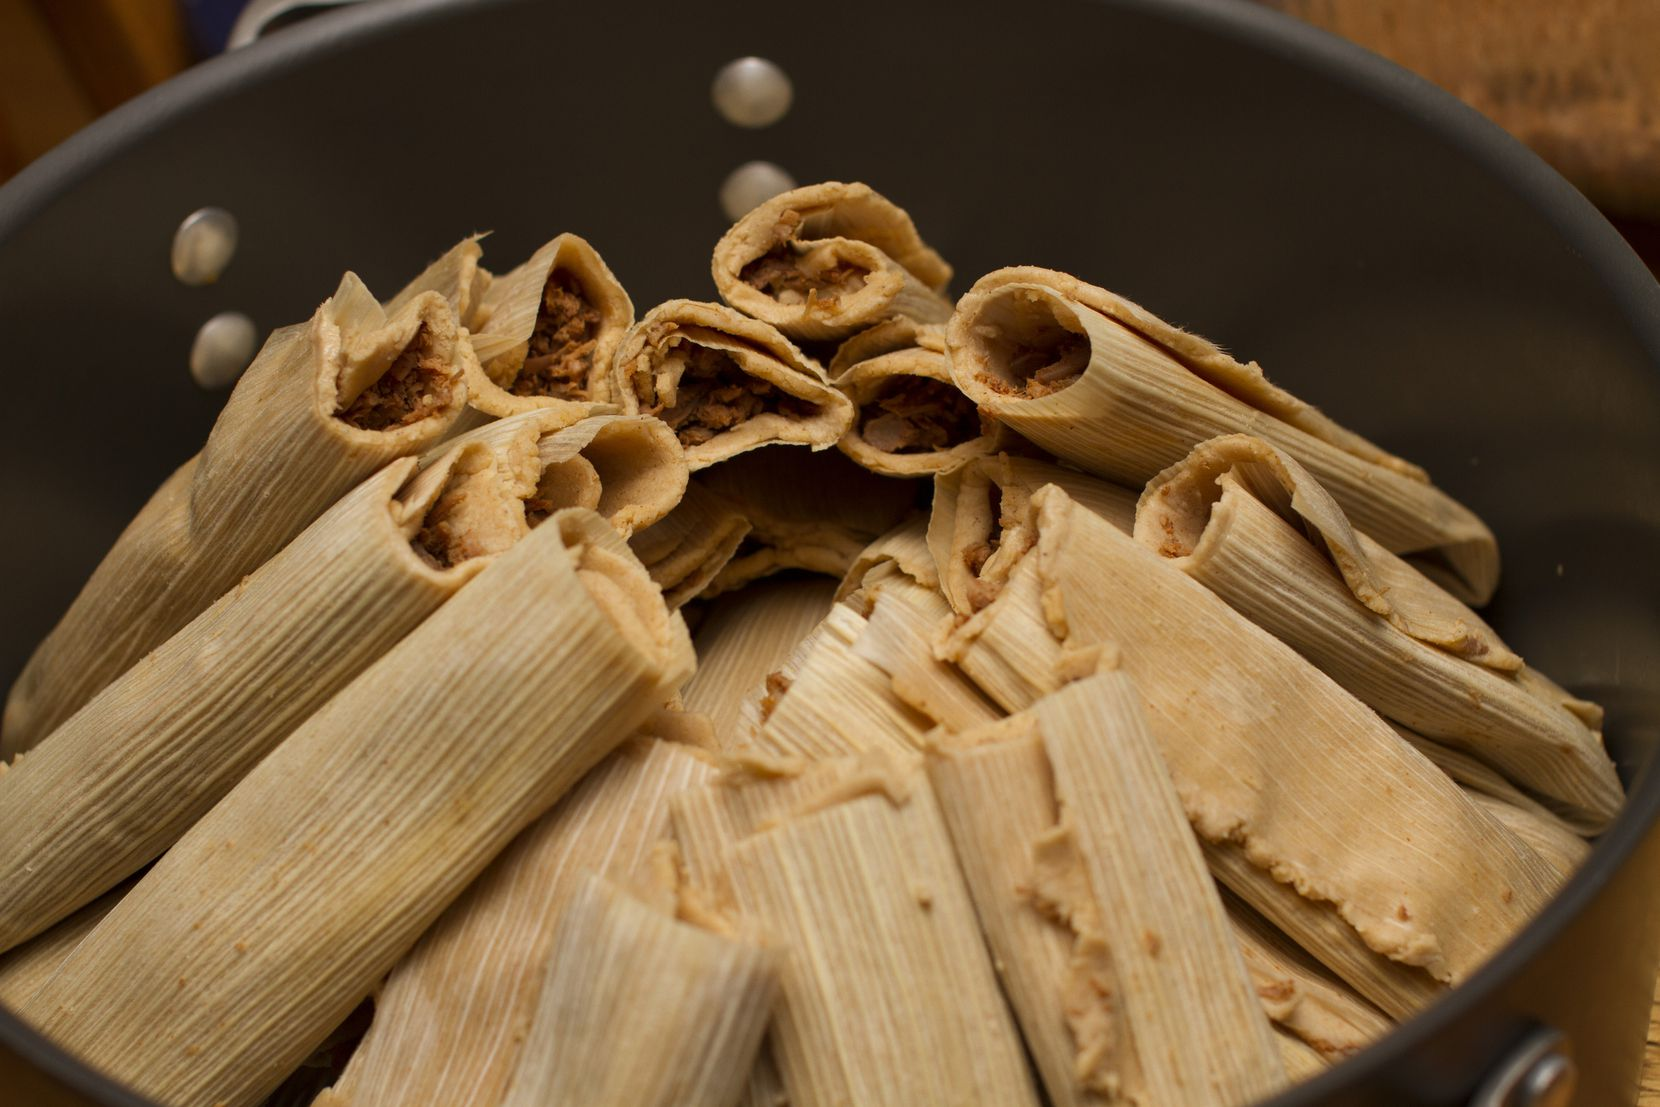 Olla para cocer tamales. GETTY IMAGES